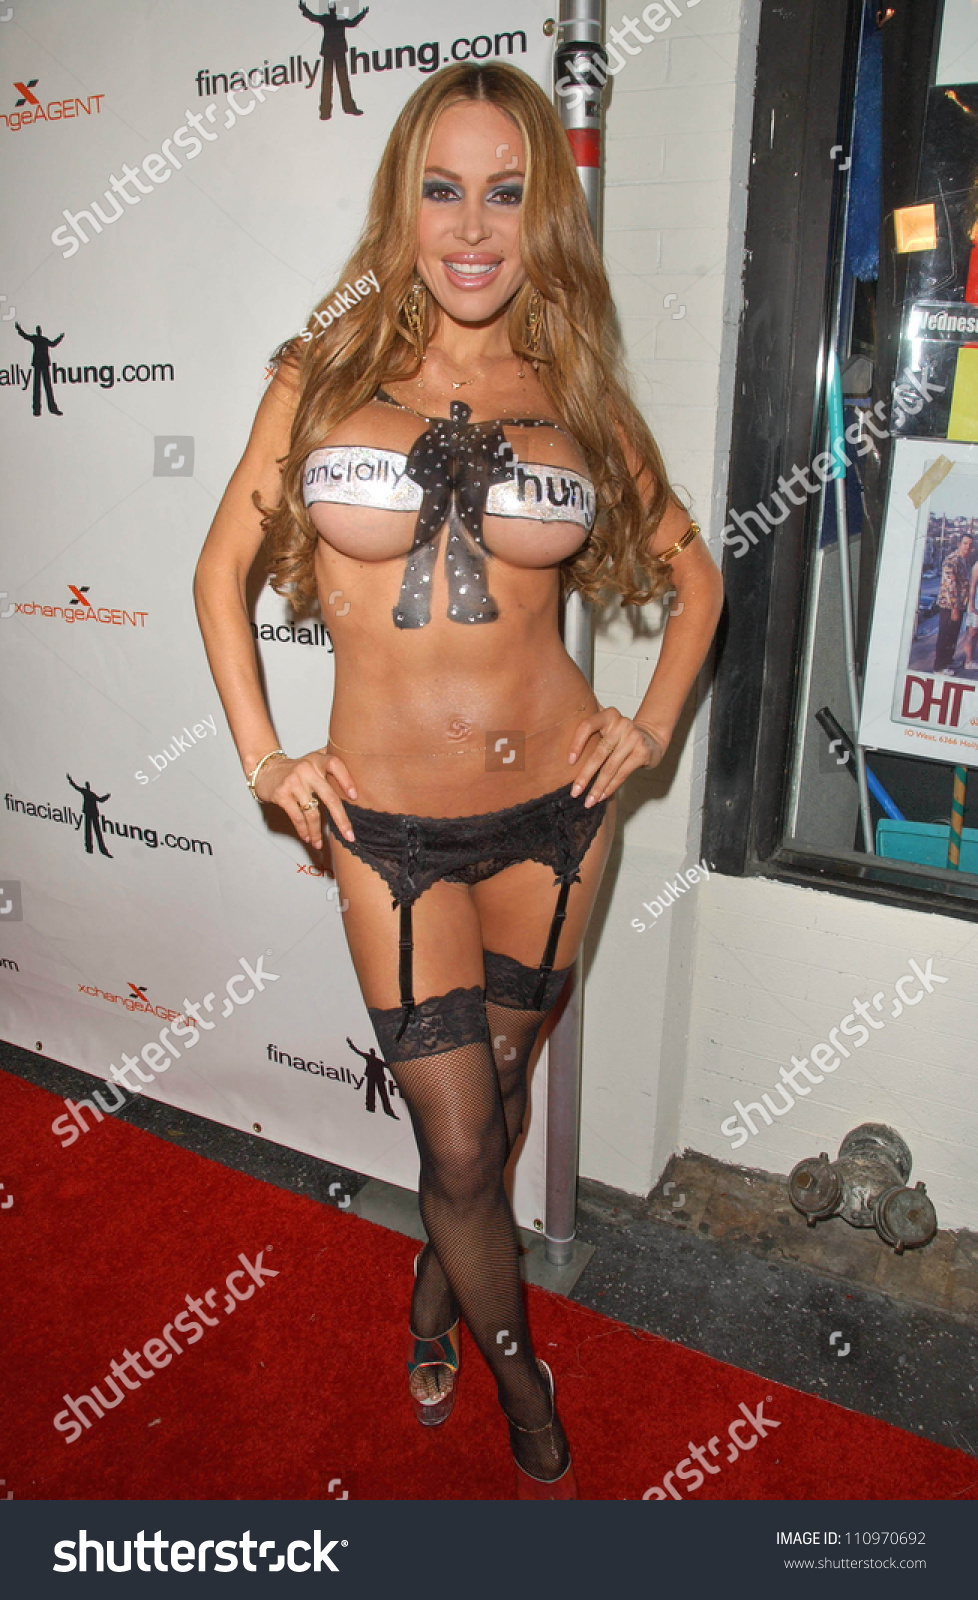 Royalty free tabitha taylor at financially hungs 110970692 stock tabitha taylor at financially hungs exclusive black card party vice hollywood ca thecheapjerseys Images